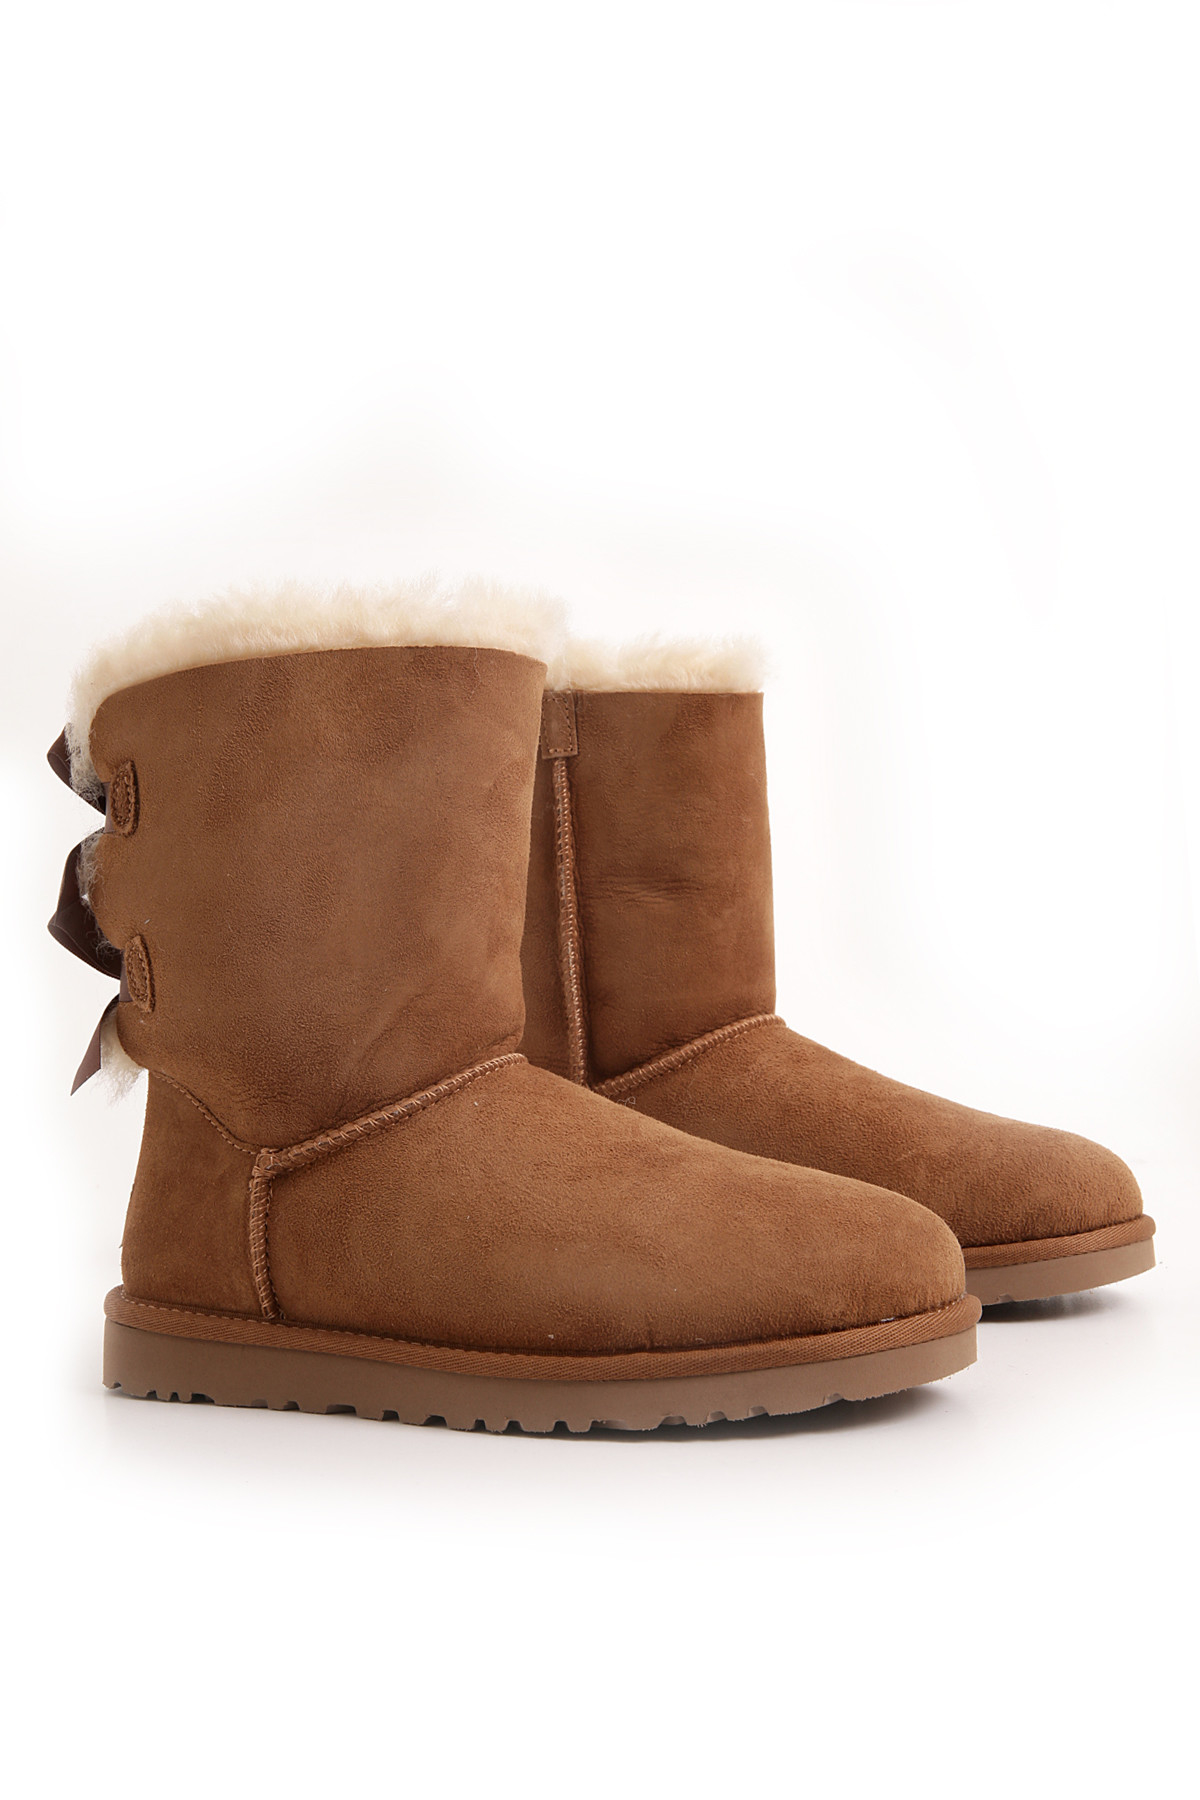 tall brown uggs with bows